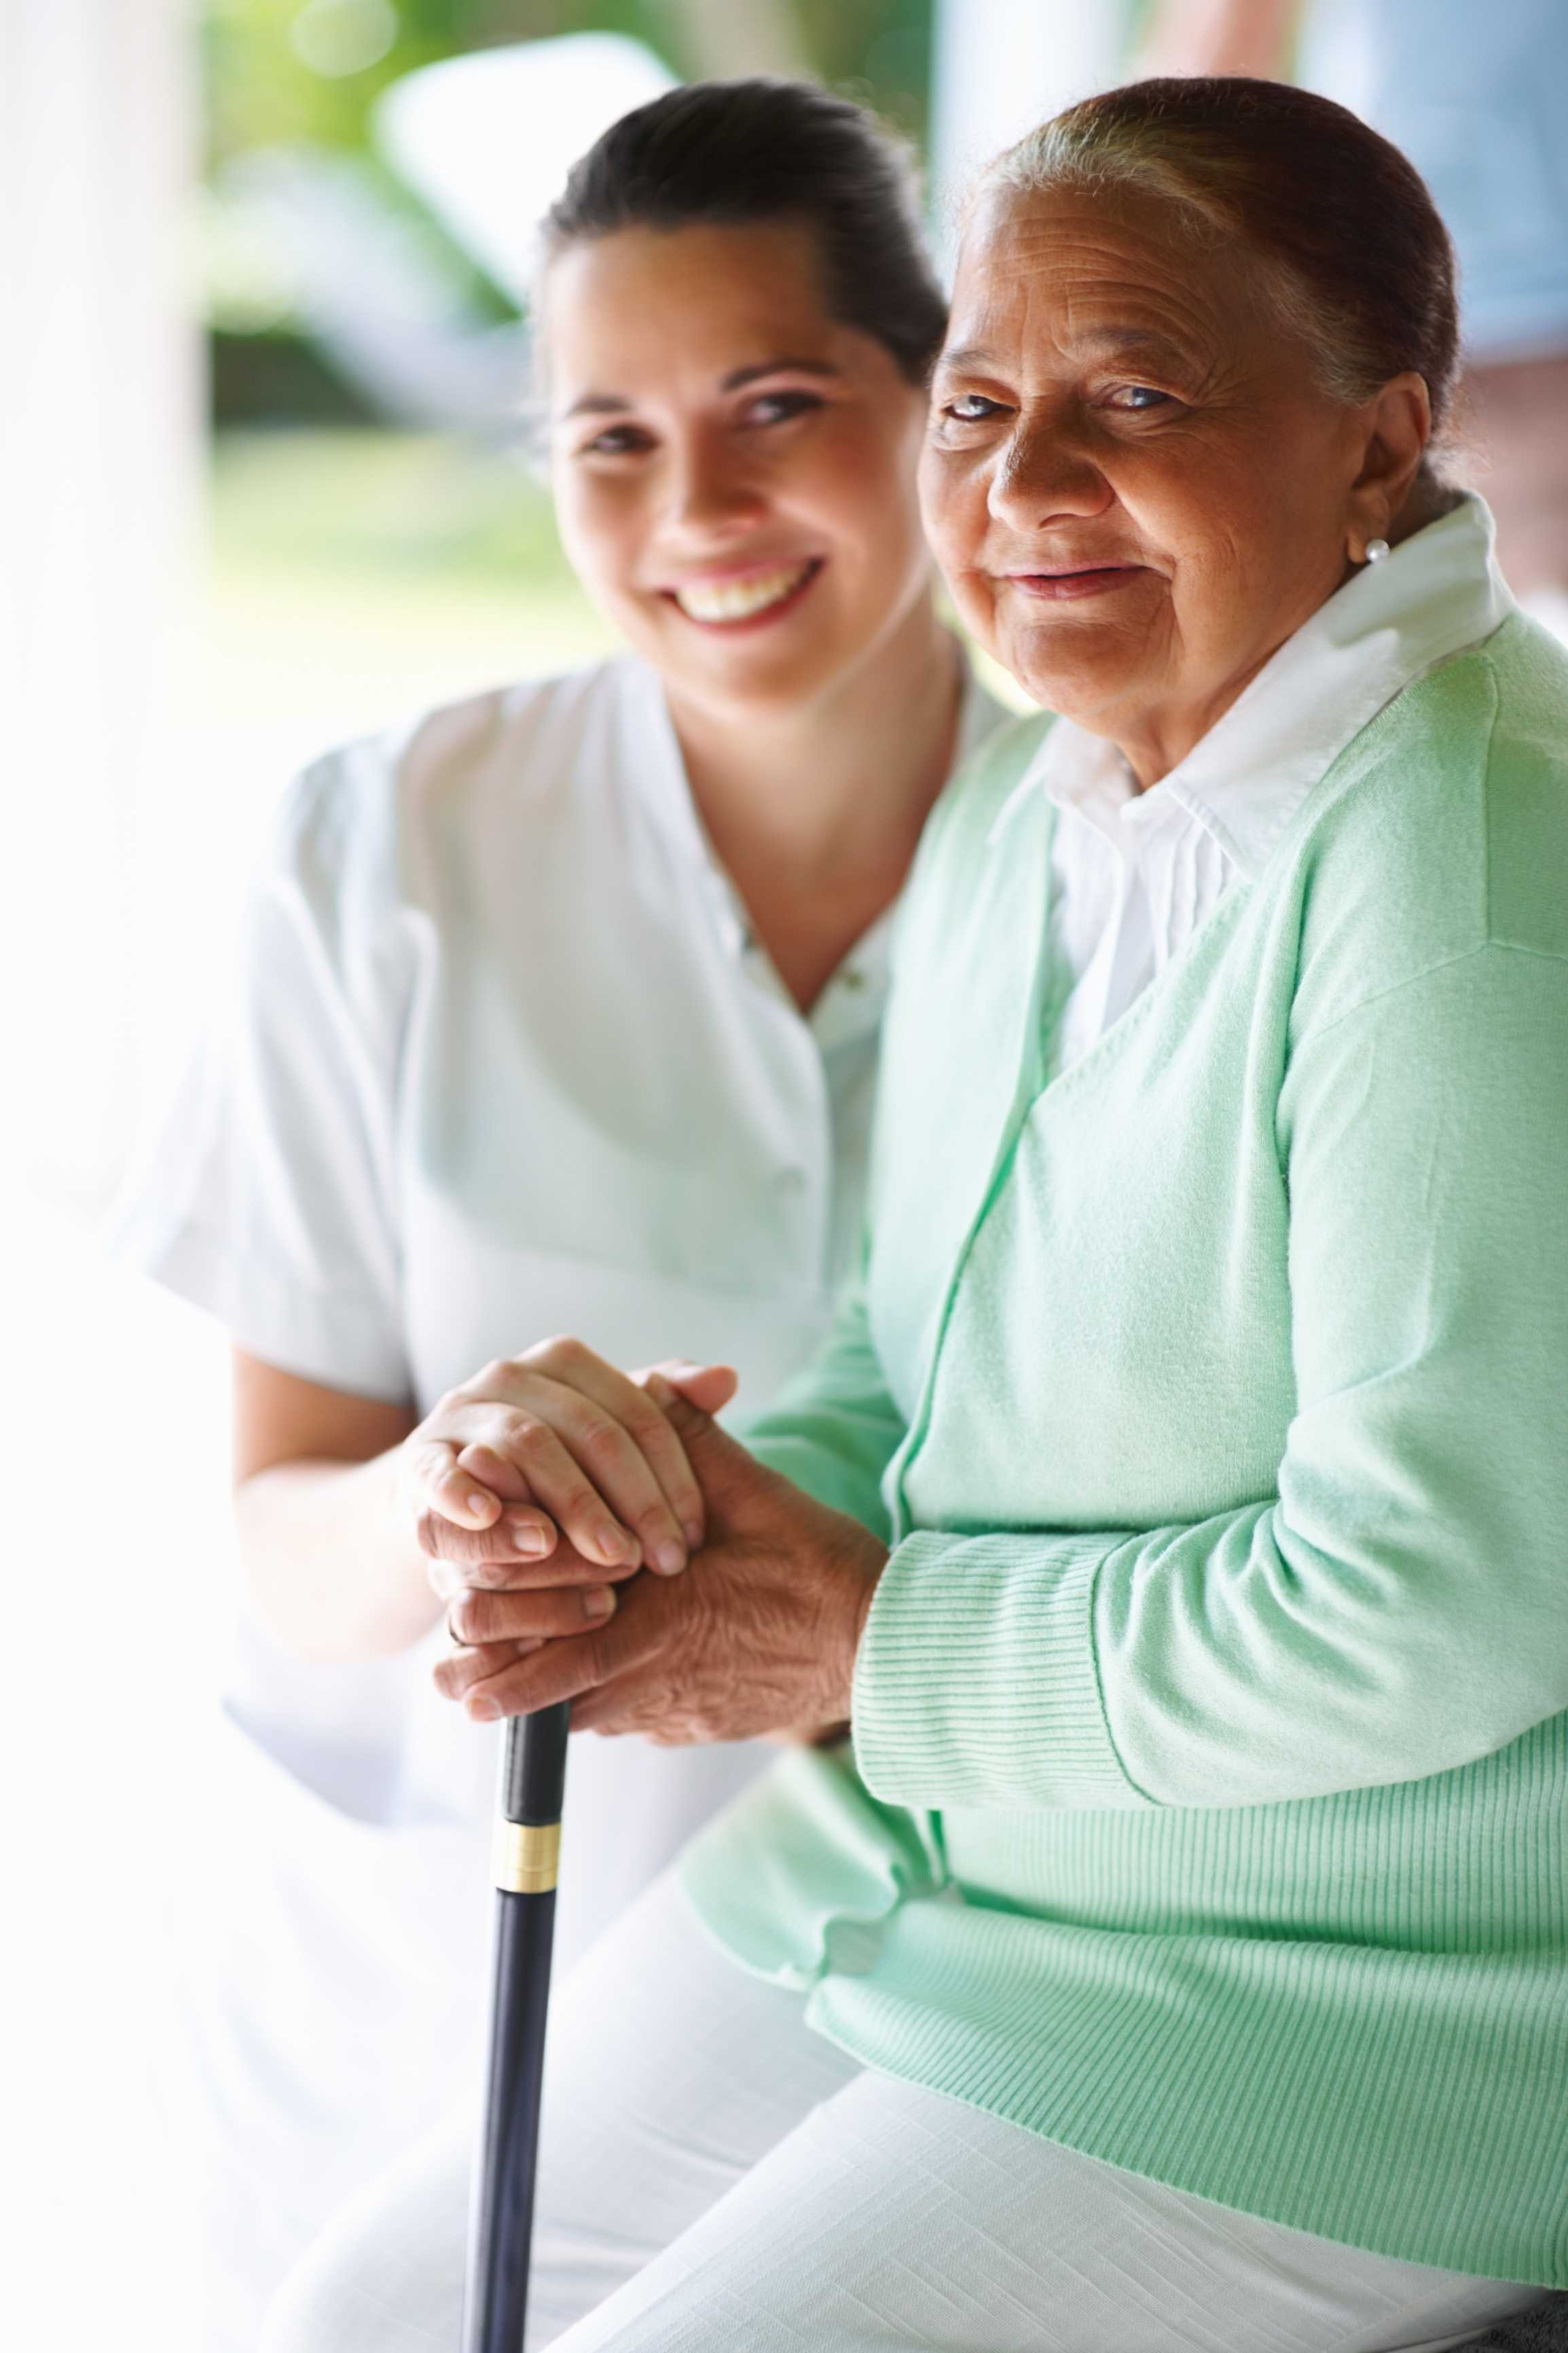 pdhpe medical conditions for the elderly Chronic diseases and level of independence are of particular importance for the  elderly the nature and extent of the health inequities.